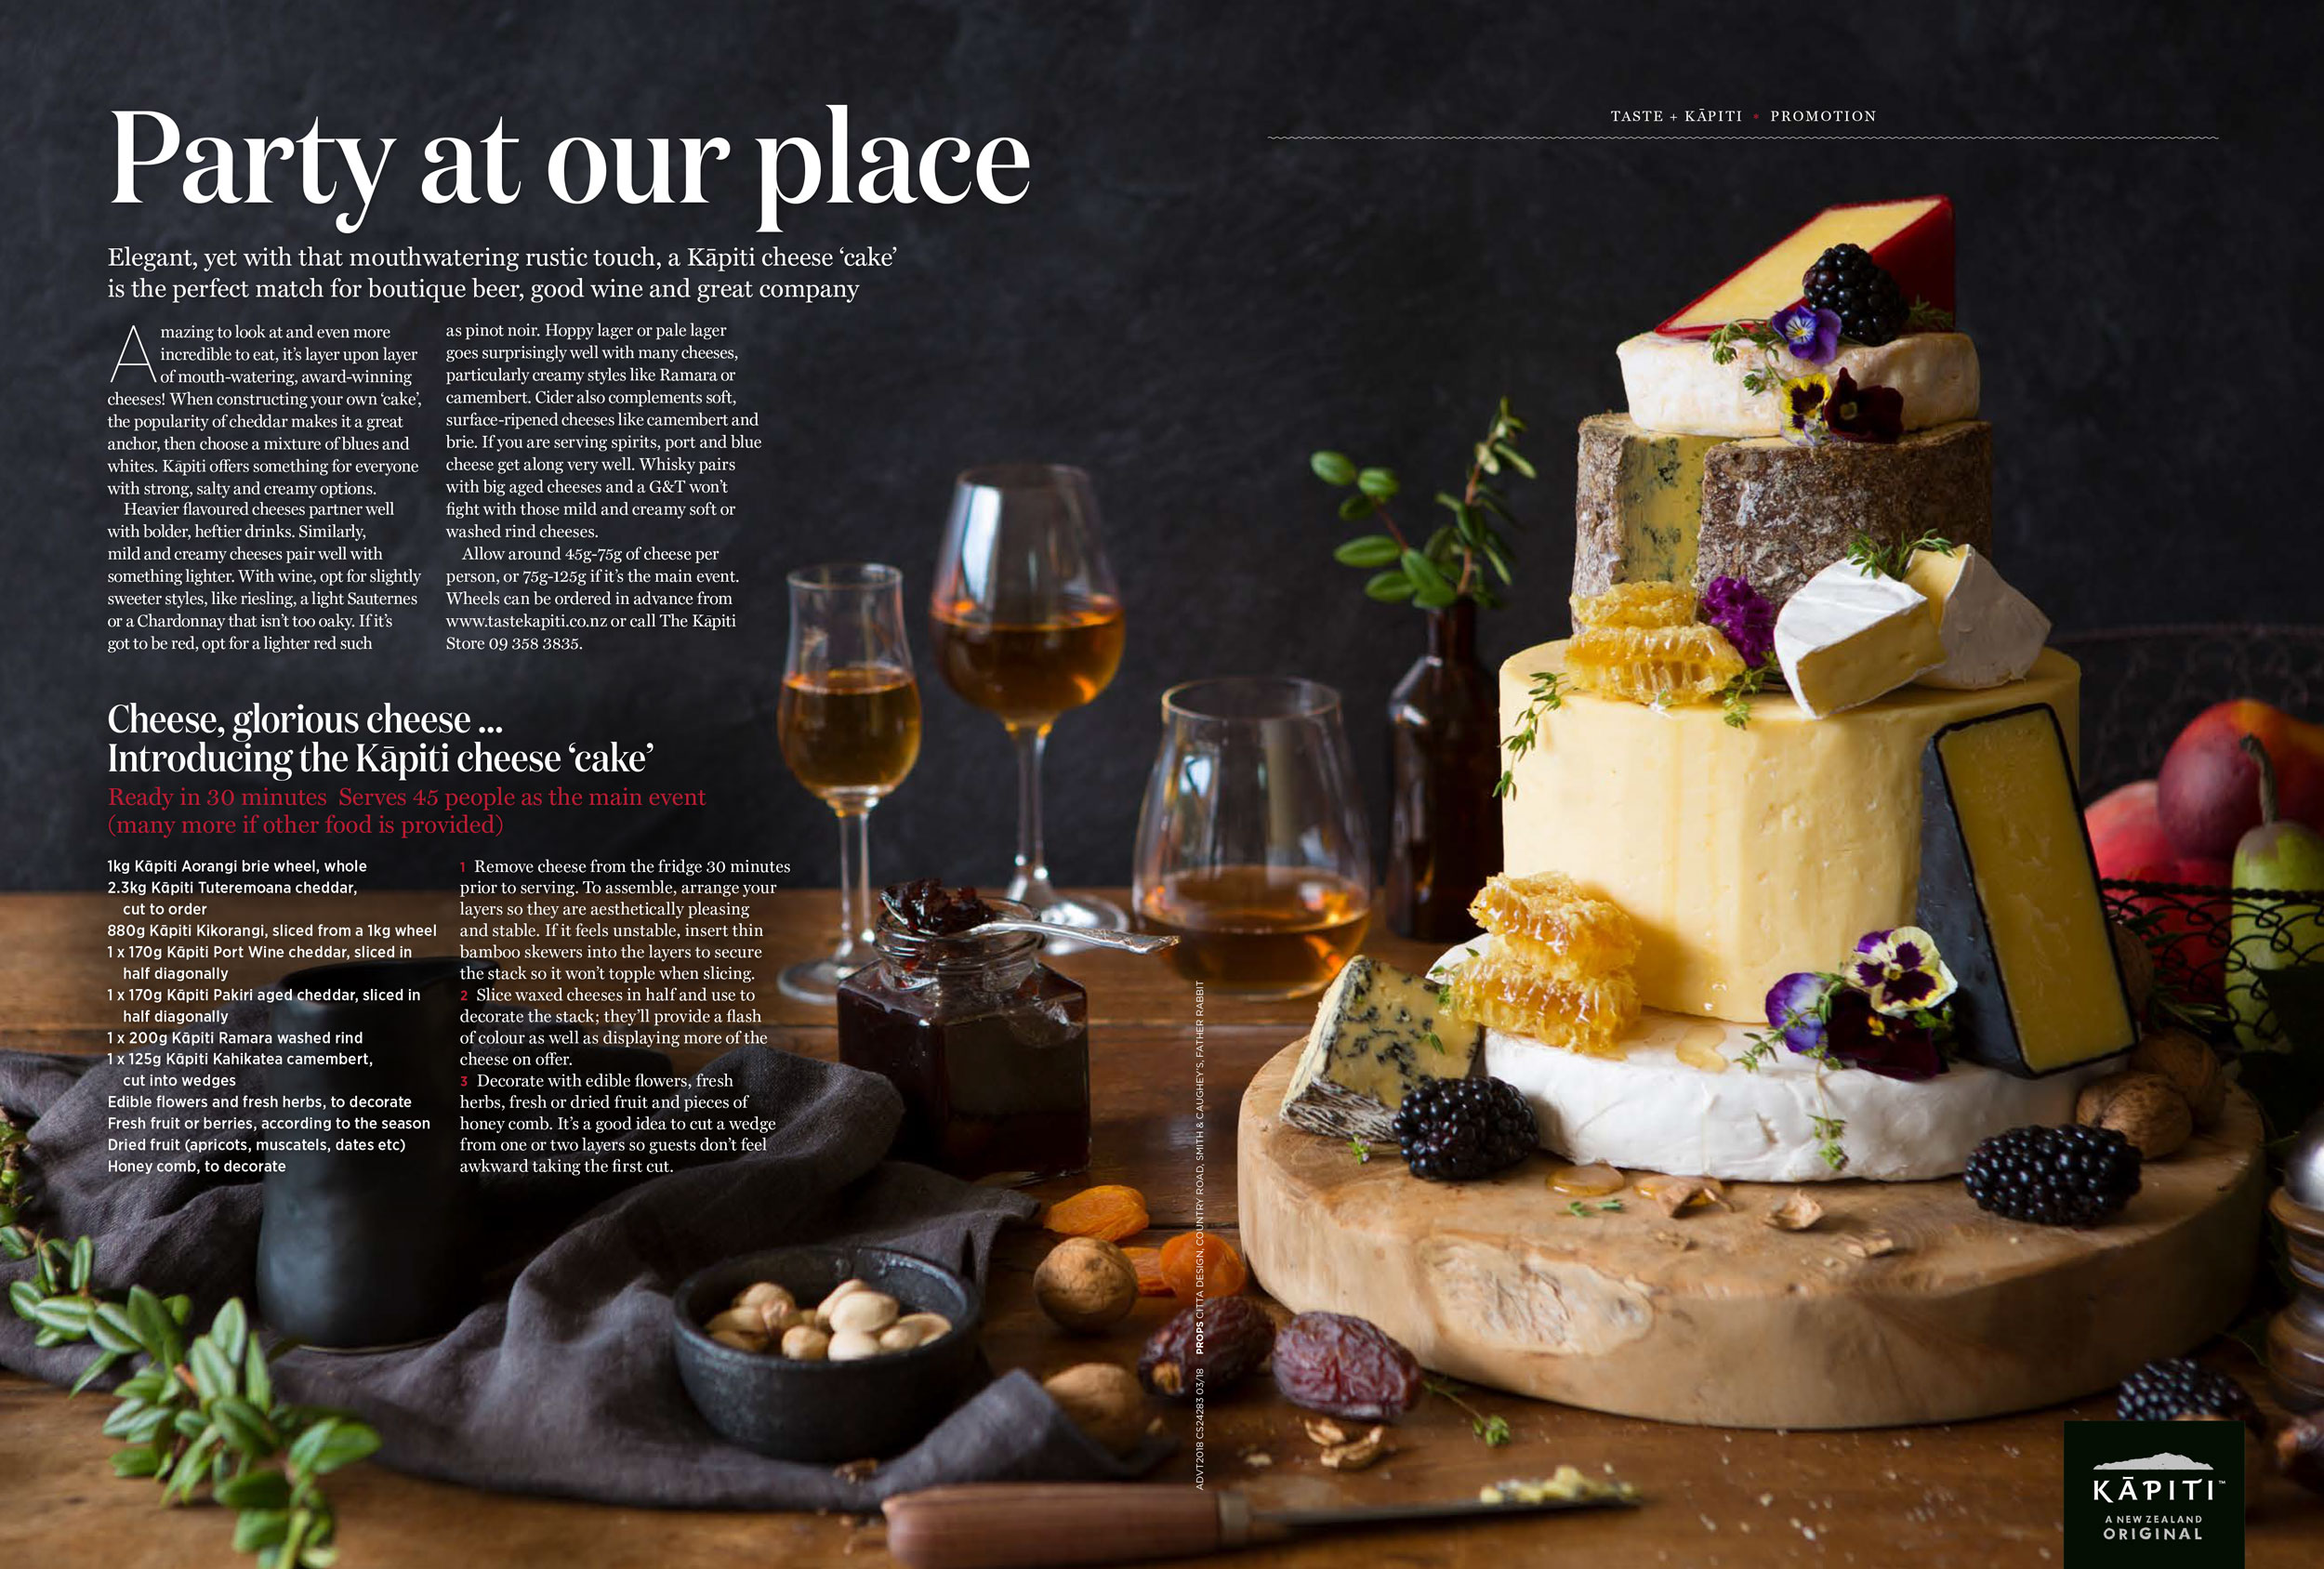 Comestibles et al - A small tasting platter of work I've done on all things food and drink.